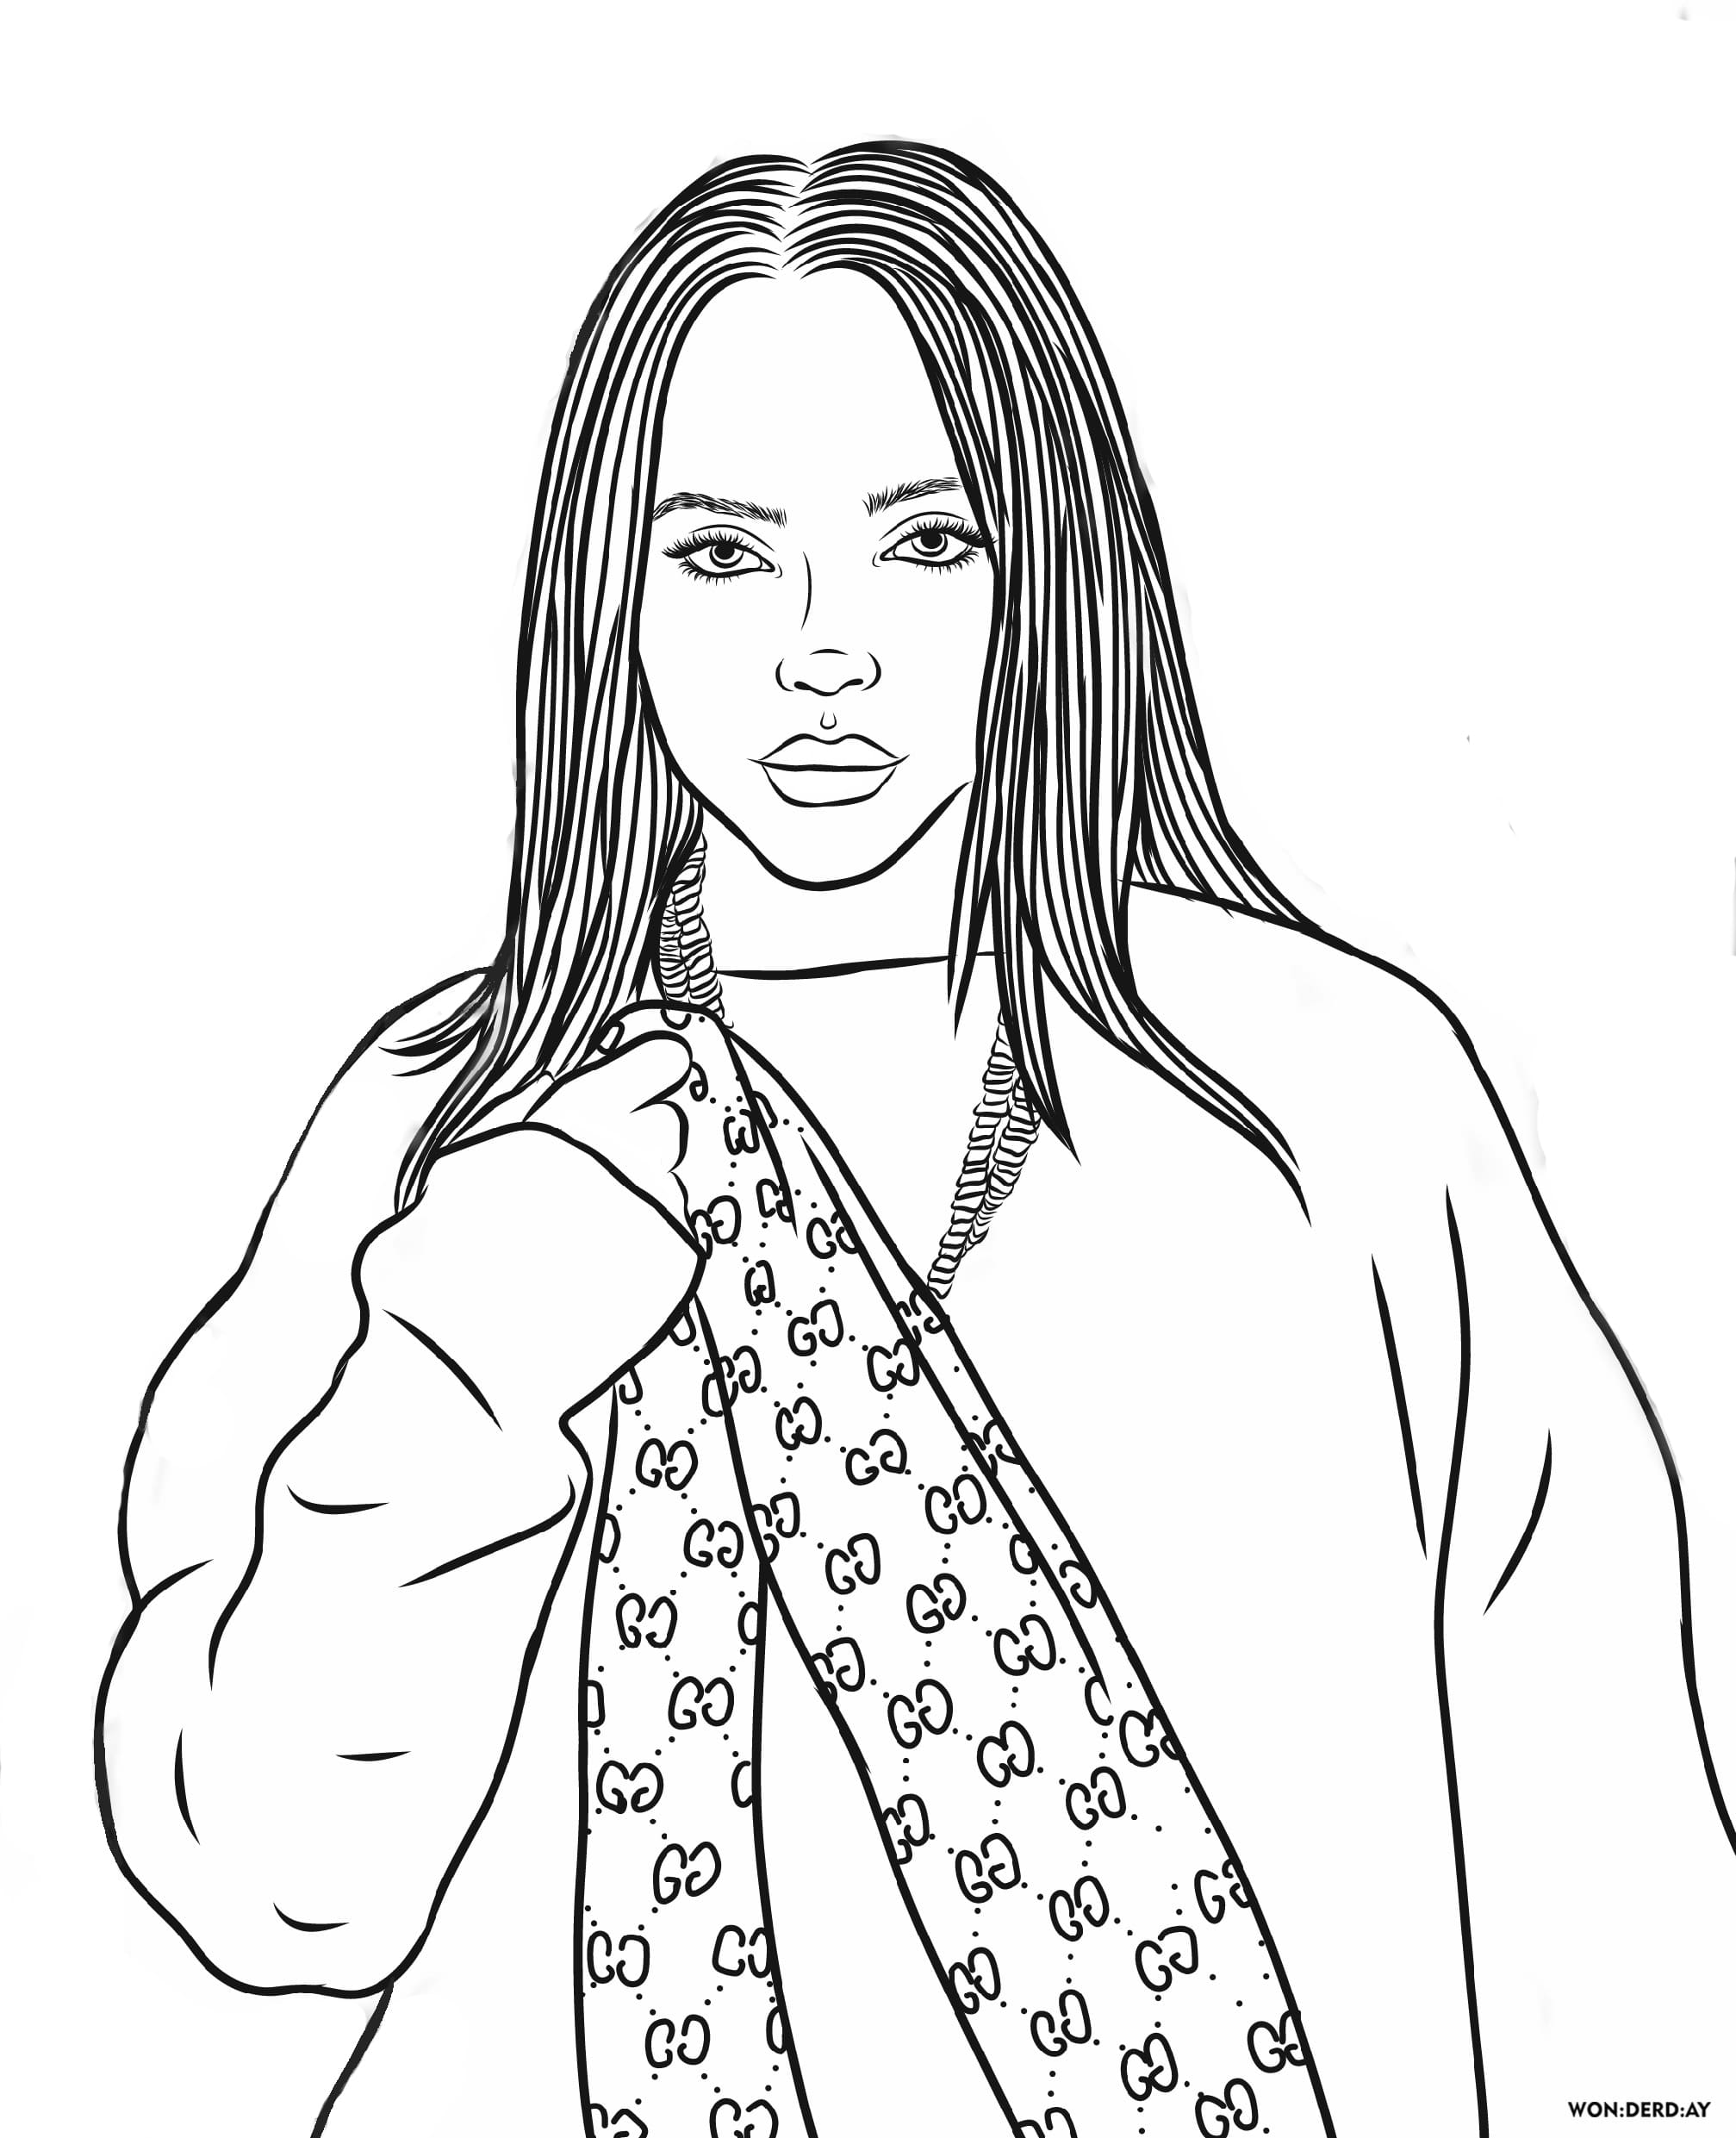 coloring sheet eyes coloring page gi joe coloring pages to download and print for free sheet coloring page eyes coloring